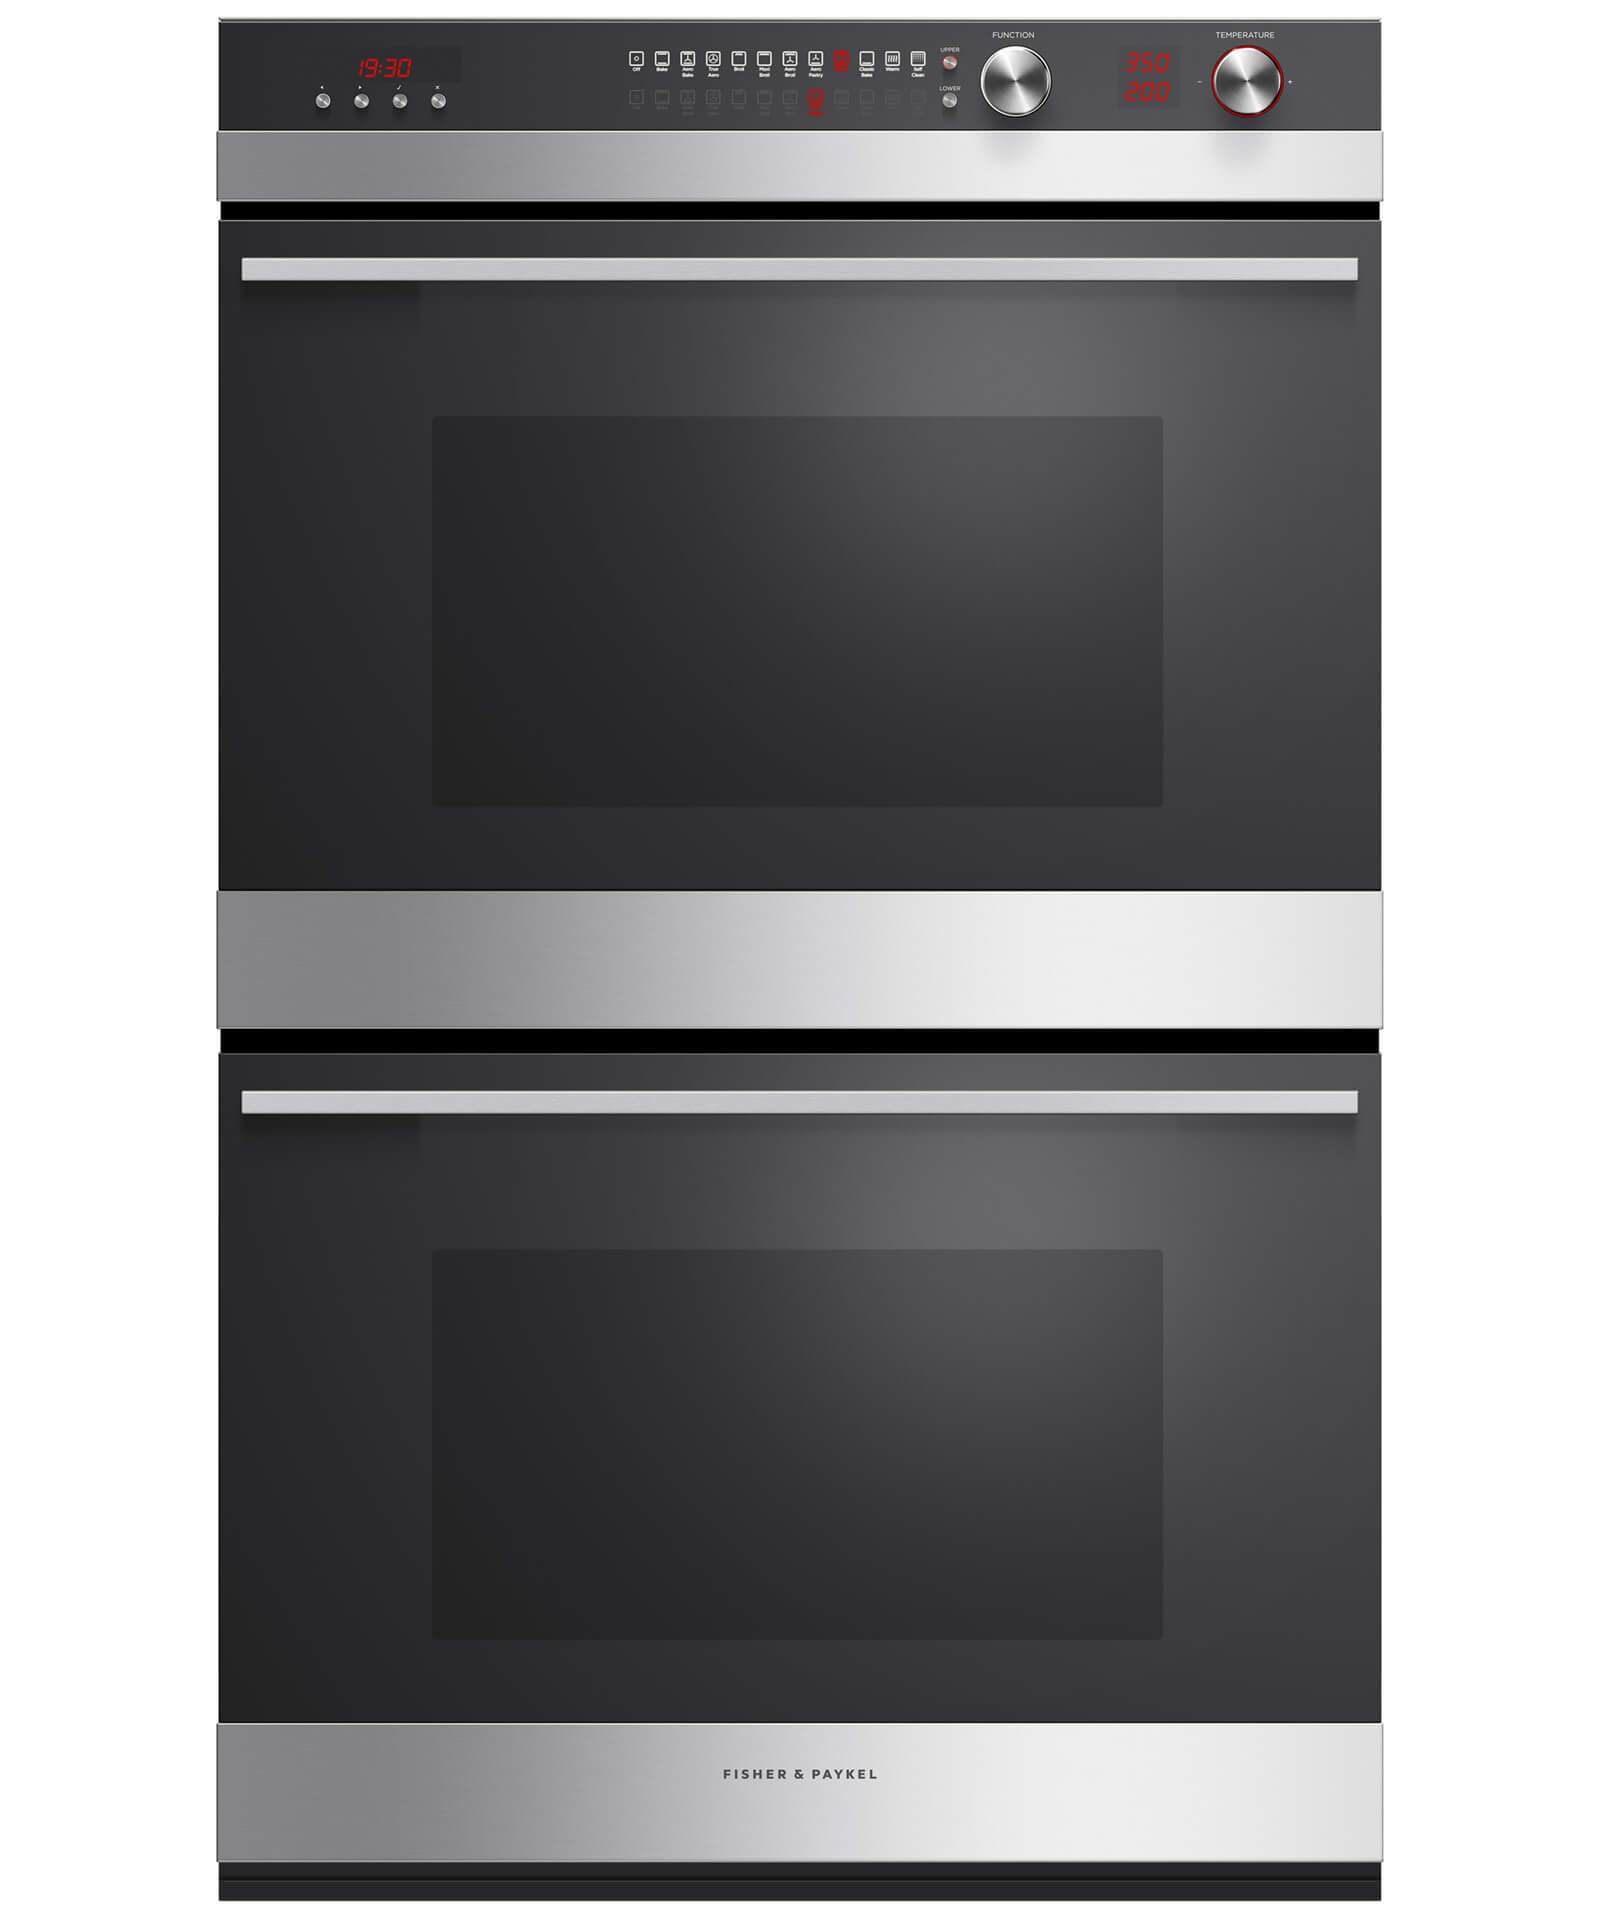 Fisher and Paykel DISPLAY MODEL--Double Built-in Oven, 30 8.2 cu ft, 11 Function